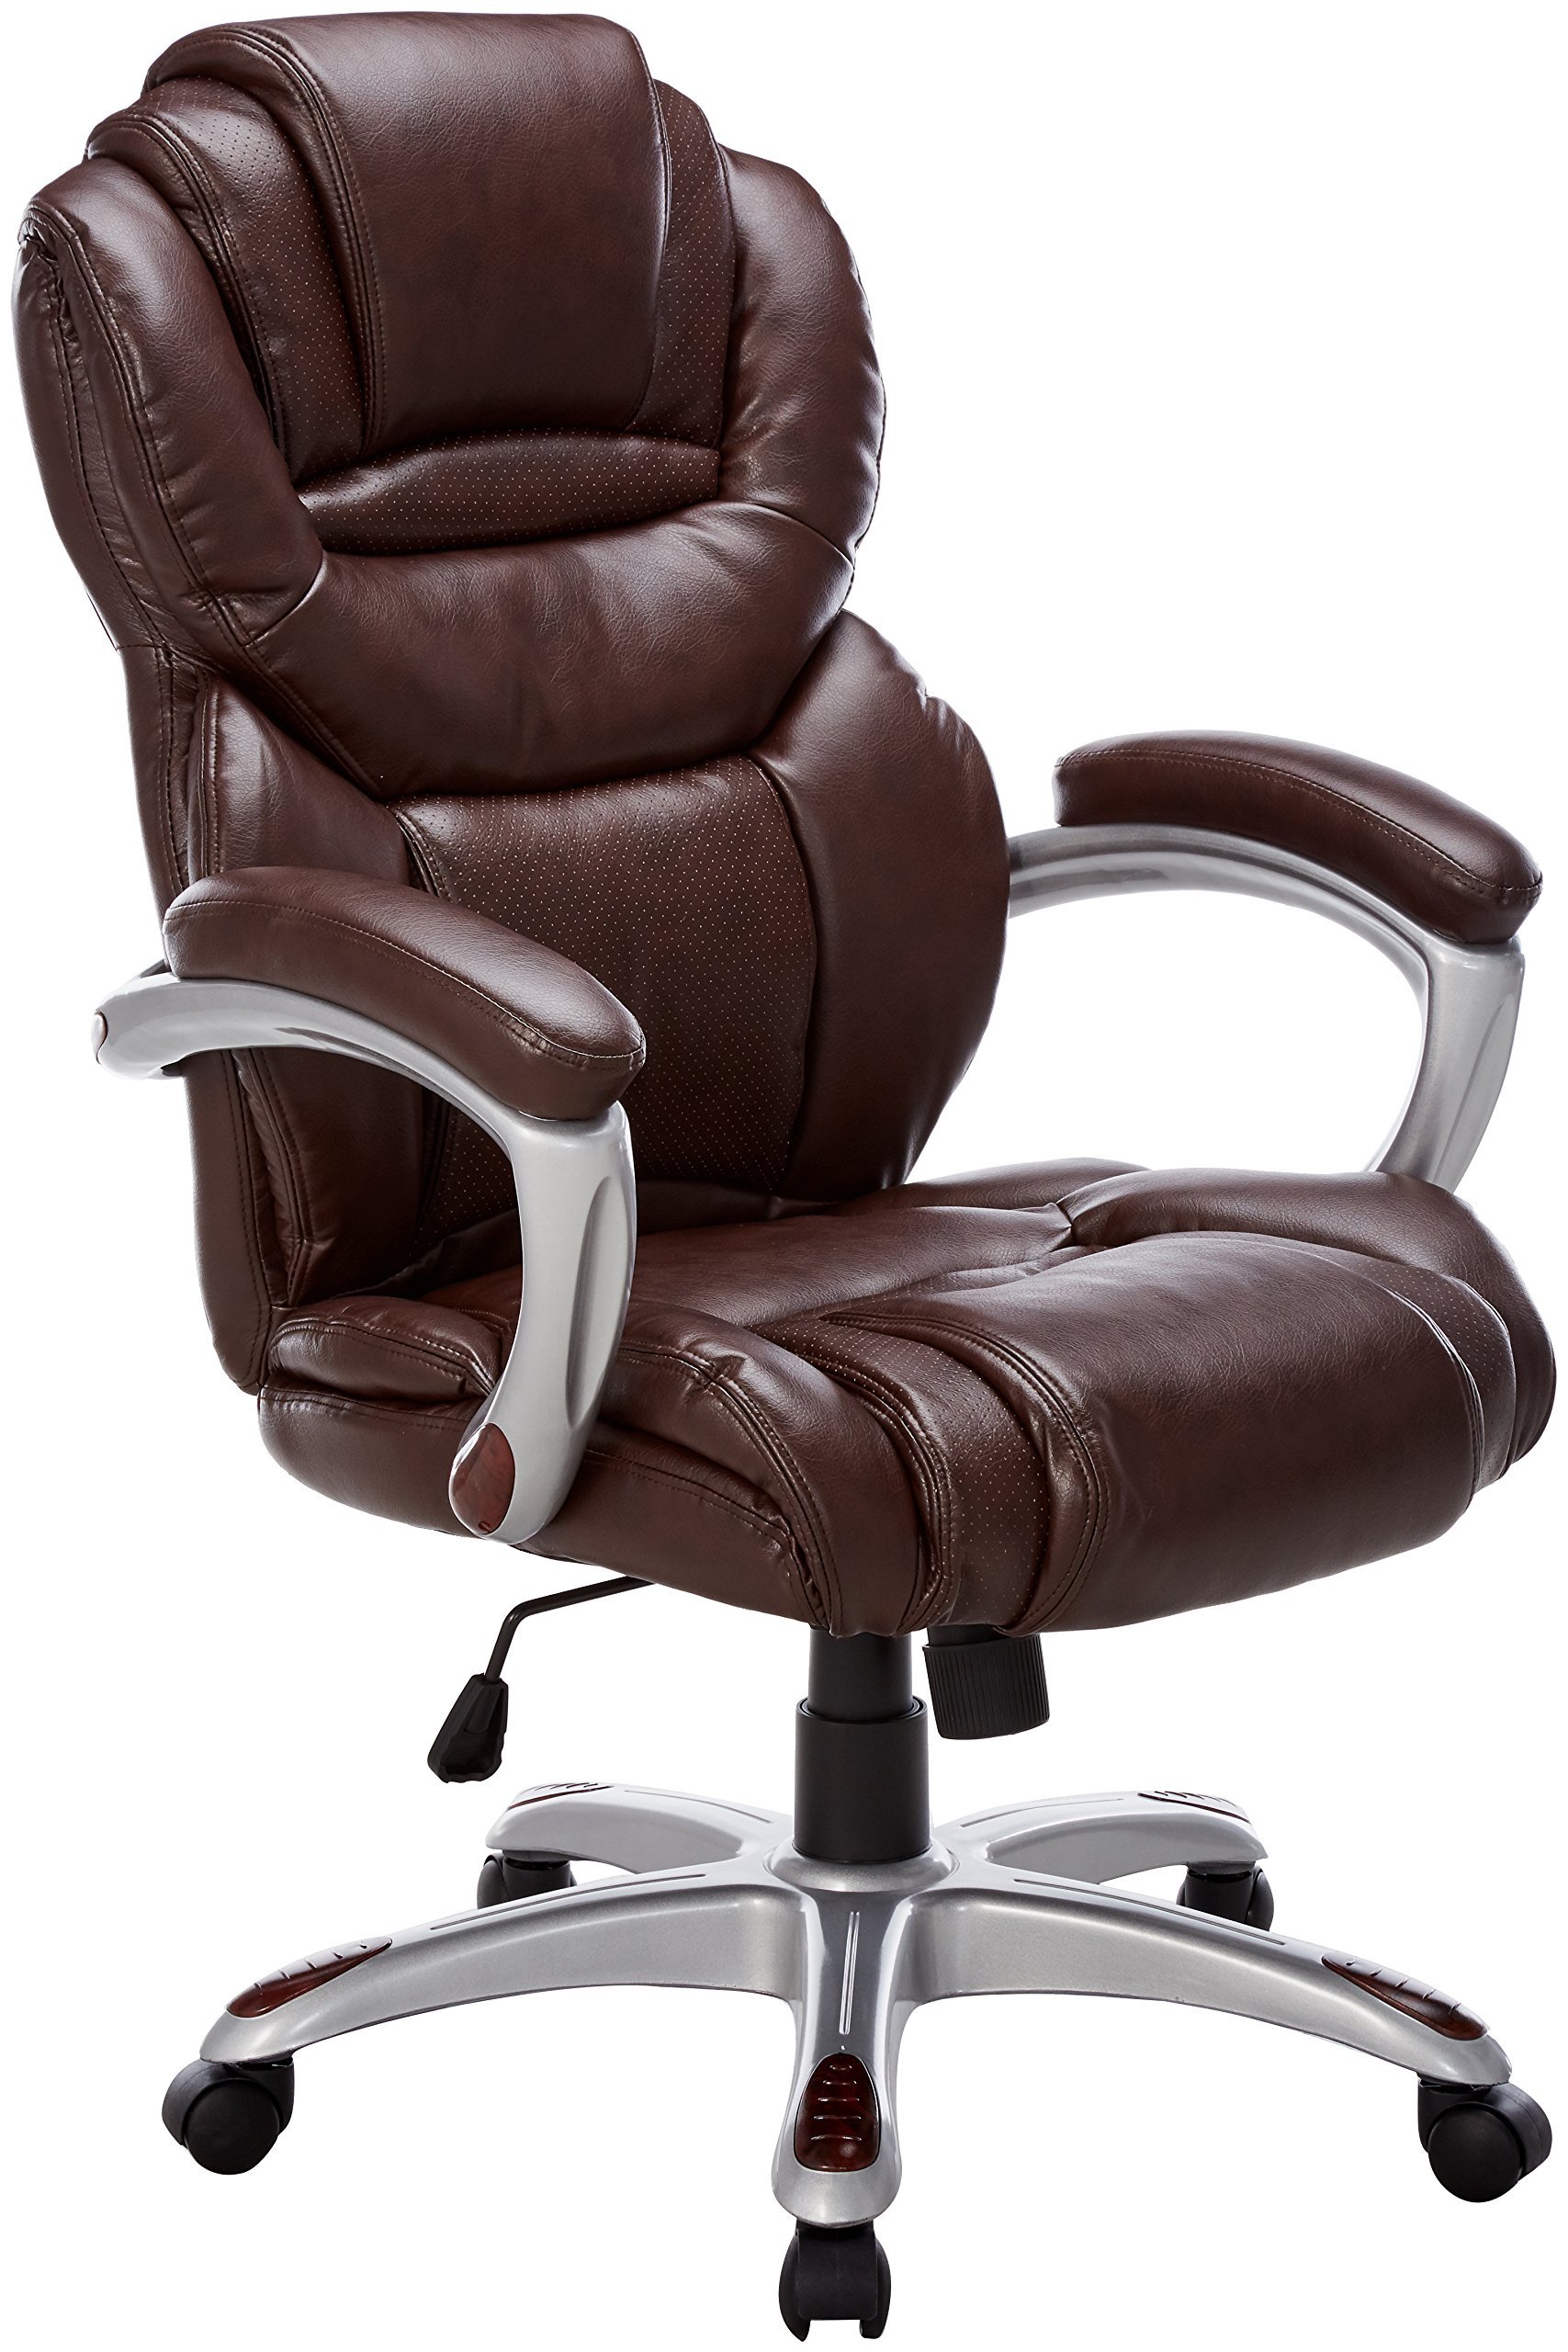 Flash Furniture High Back Brown Leather Executive Swivel Ergonomic Office Chair with Arms by Flash Furniture